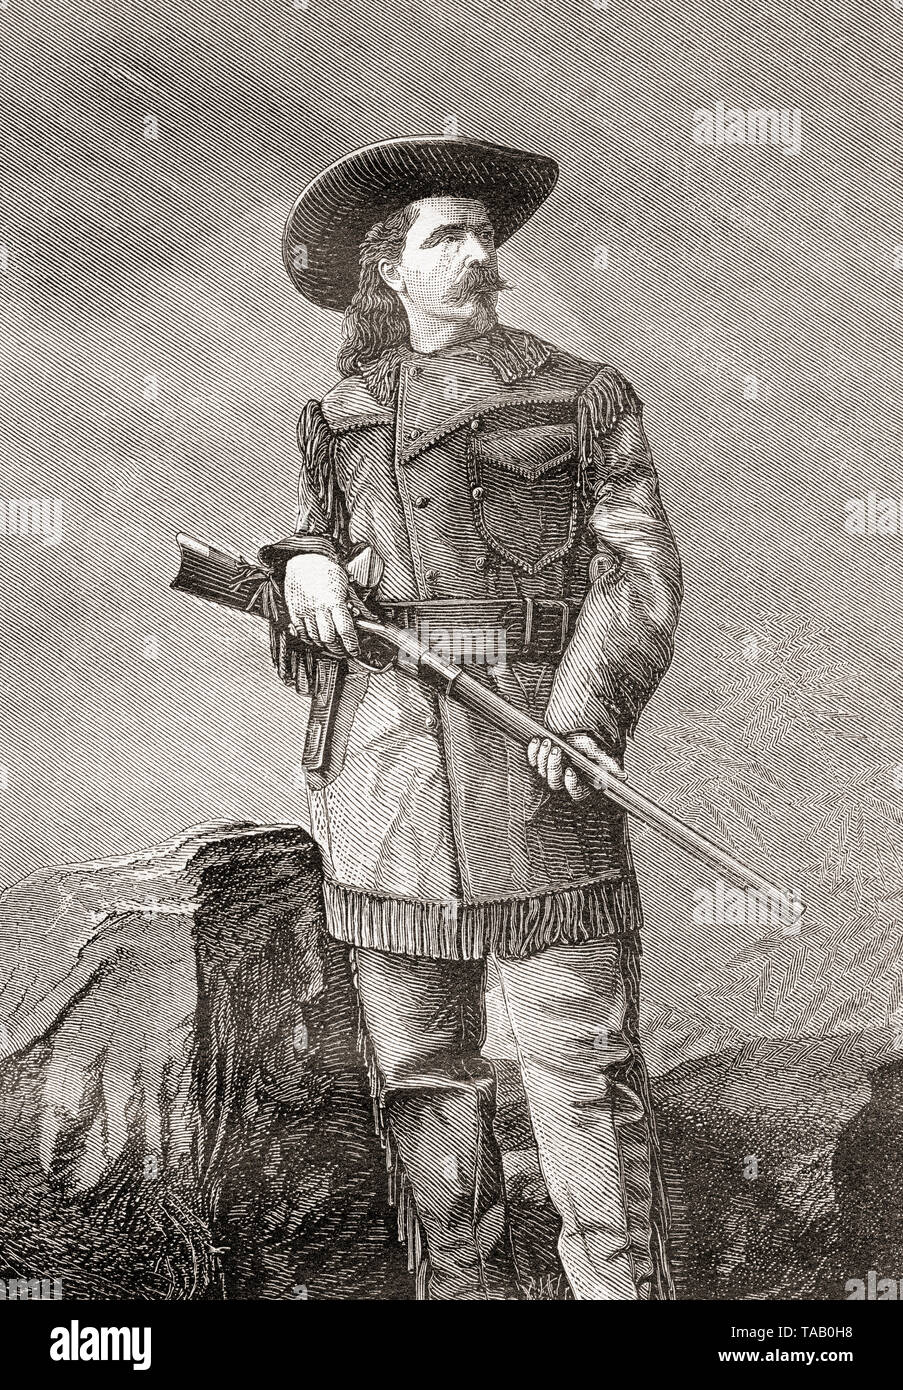 William Frederick 'Buffalo Bill' Cody, 1846 – 1917.  American scout, bison hunter, and showman.  From La Ilustracion Iberica, published 1884. - Stock Image